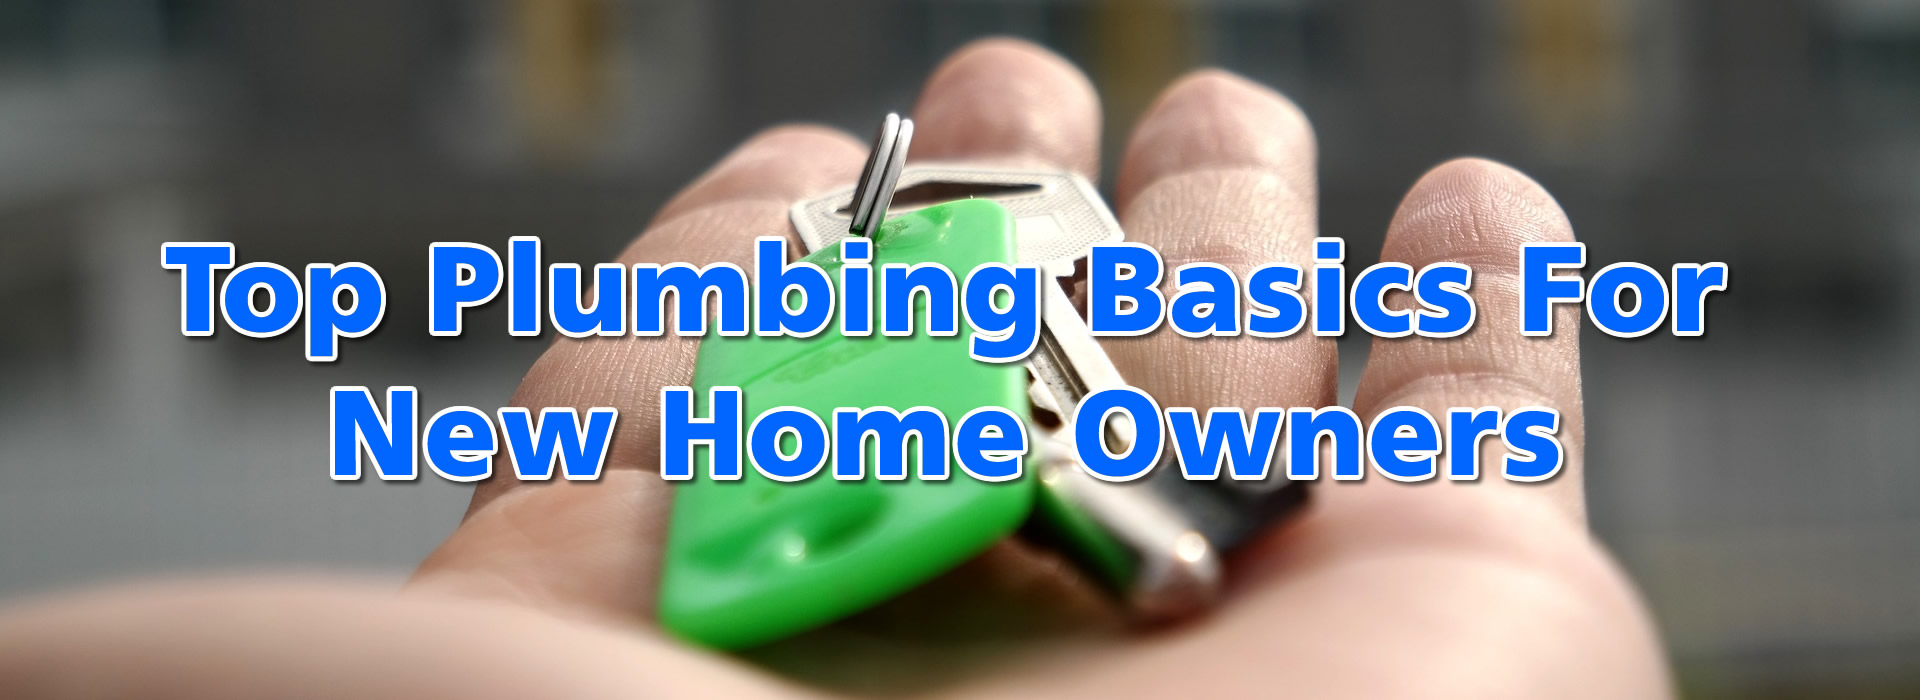 Top Plumbing Basics For New Home Owners